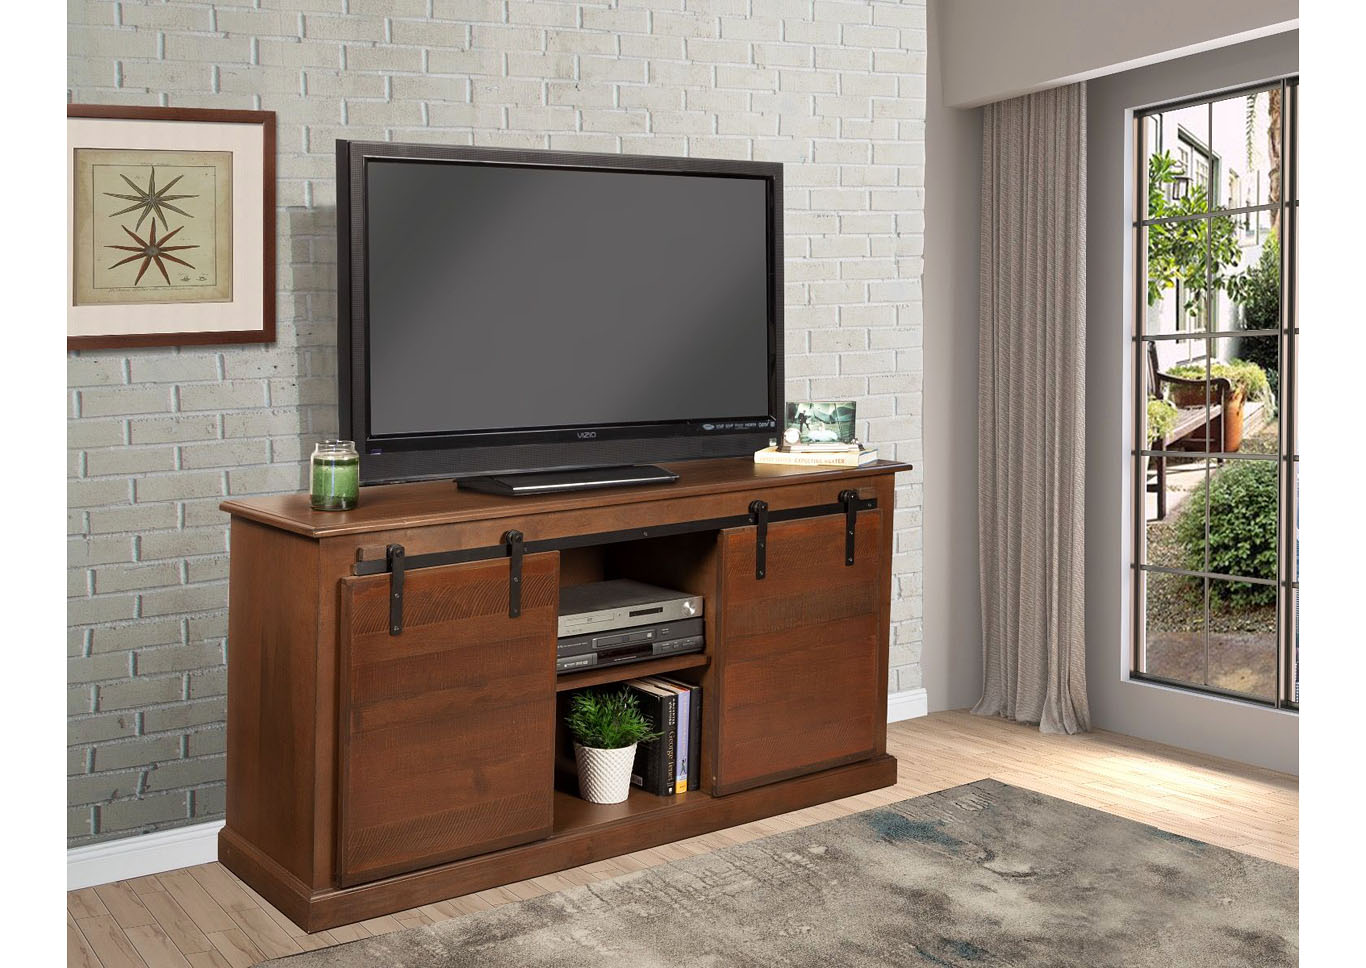 Country Barn Door 62 ³ TV STAND- Brown,Instore